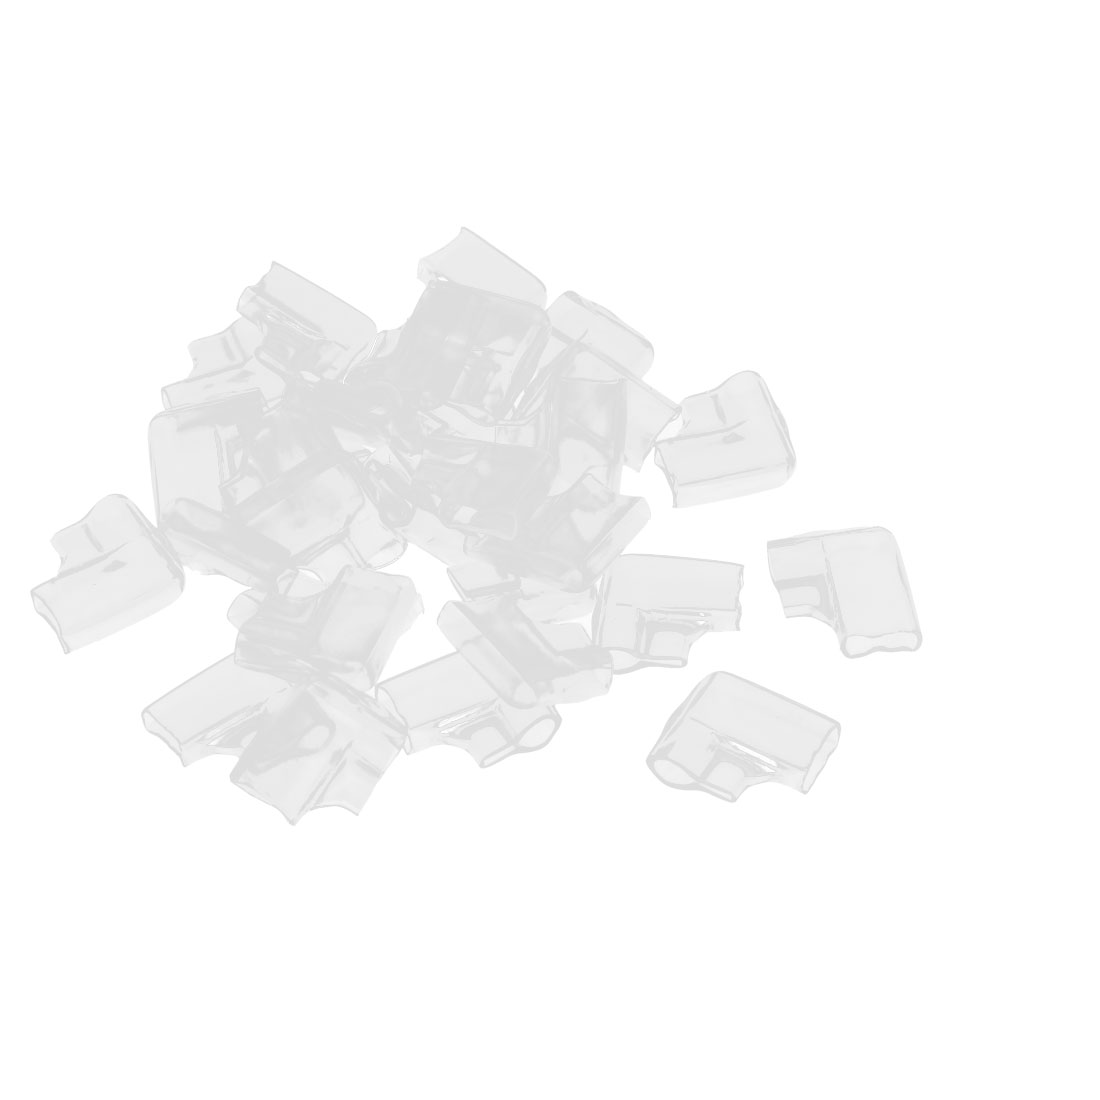 30 Pcs Clear PVC Connectors 6.3mm Elbow Double Female Terminal Sleeves